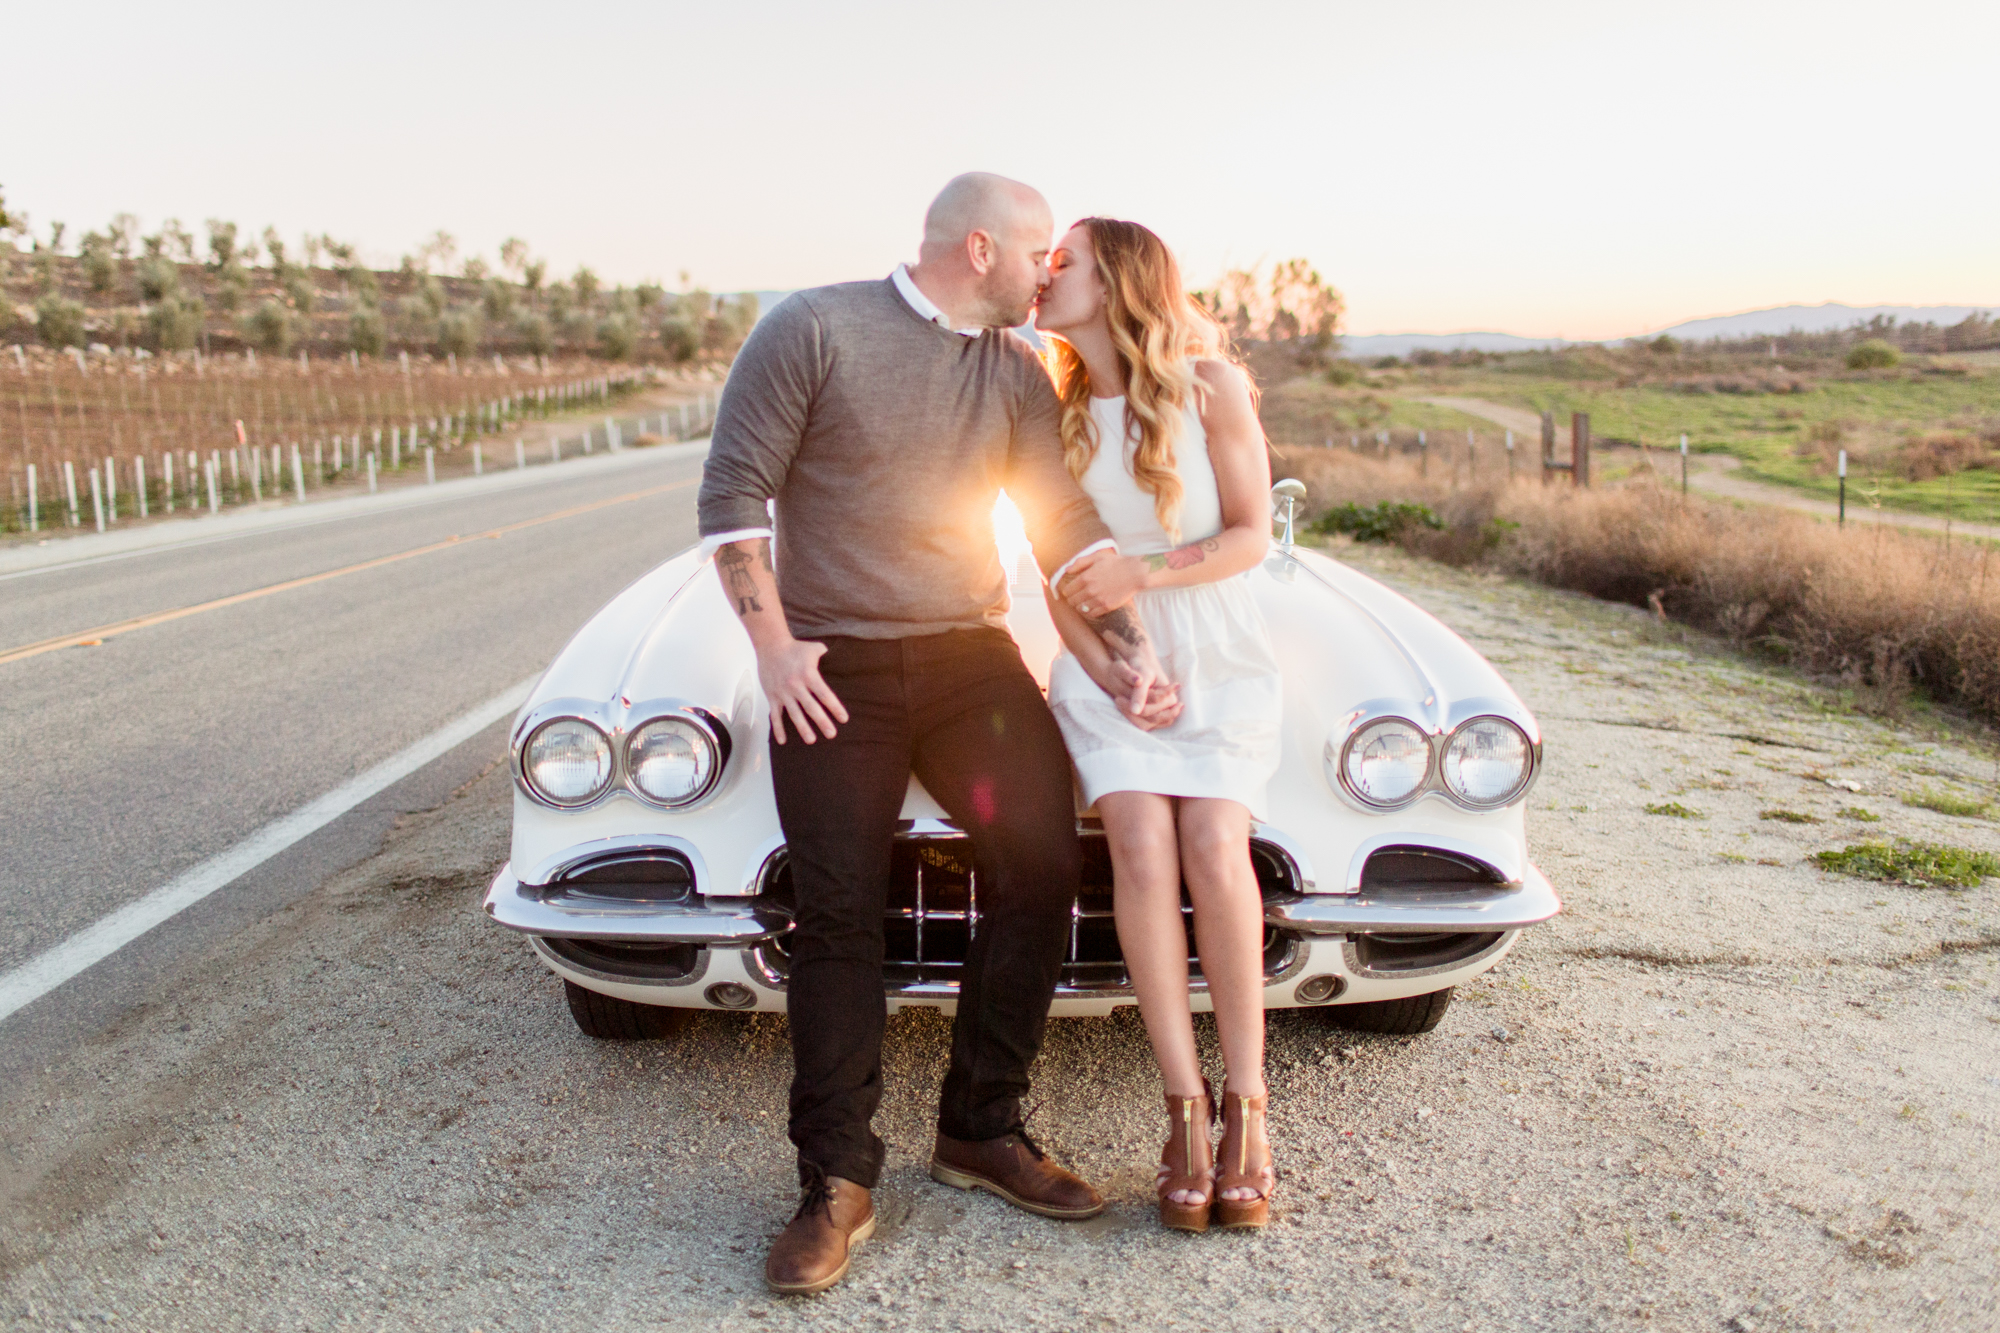 Lovisa Photo- Engagement Photography- Temecula Wine Country, California- Inland Empire- Orange County